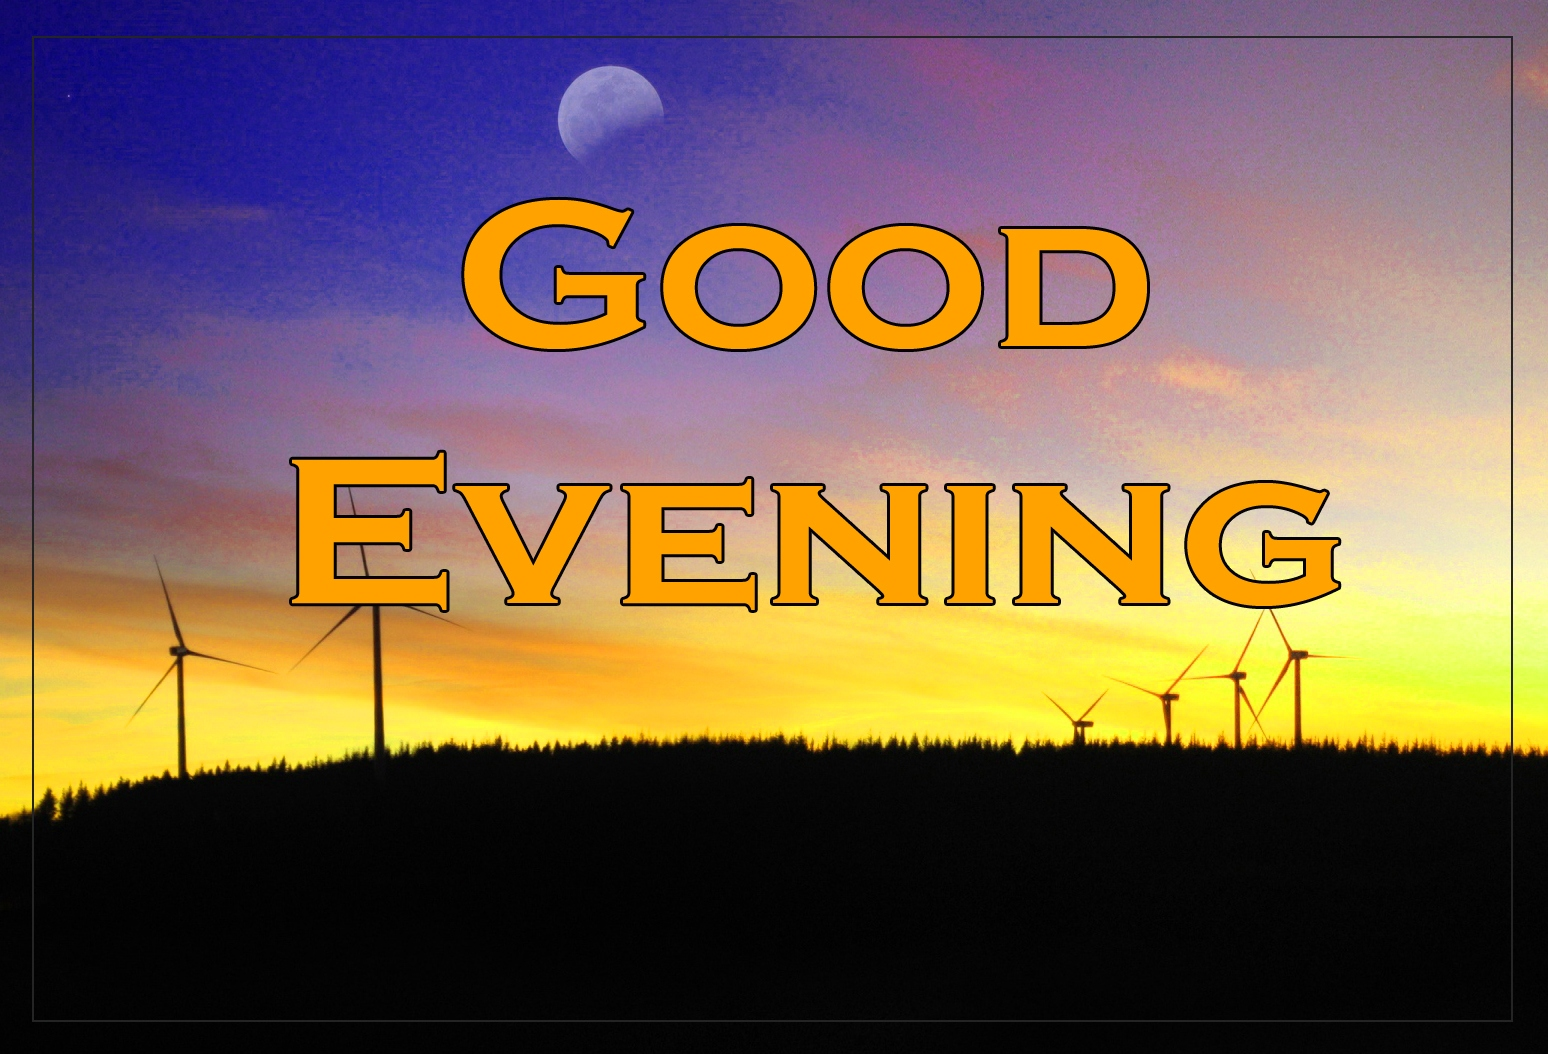 good evening photo download 10